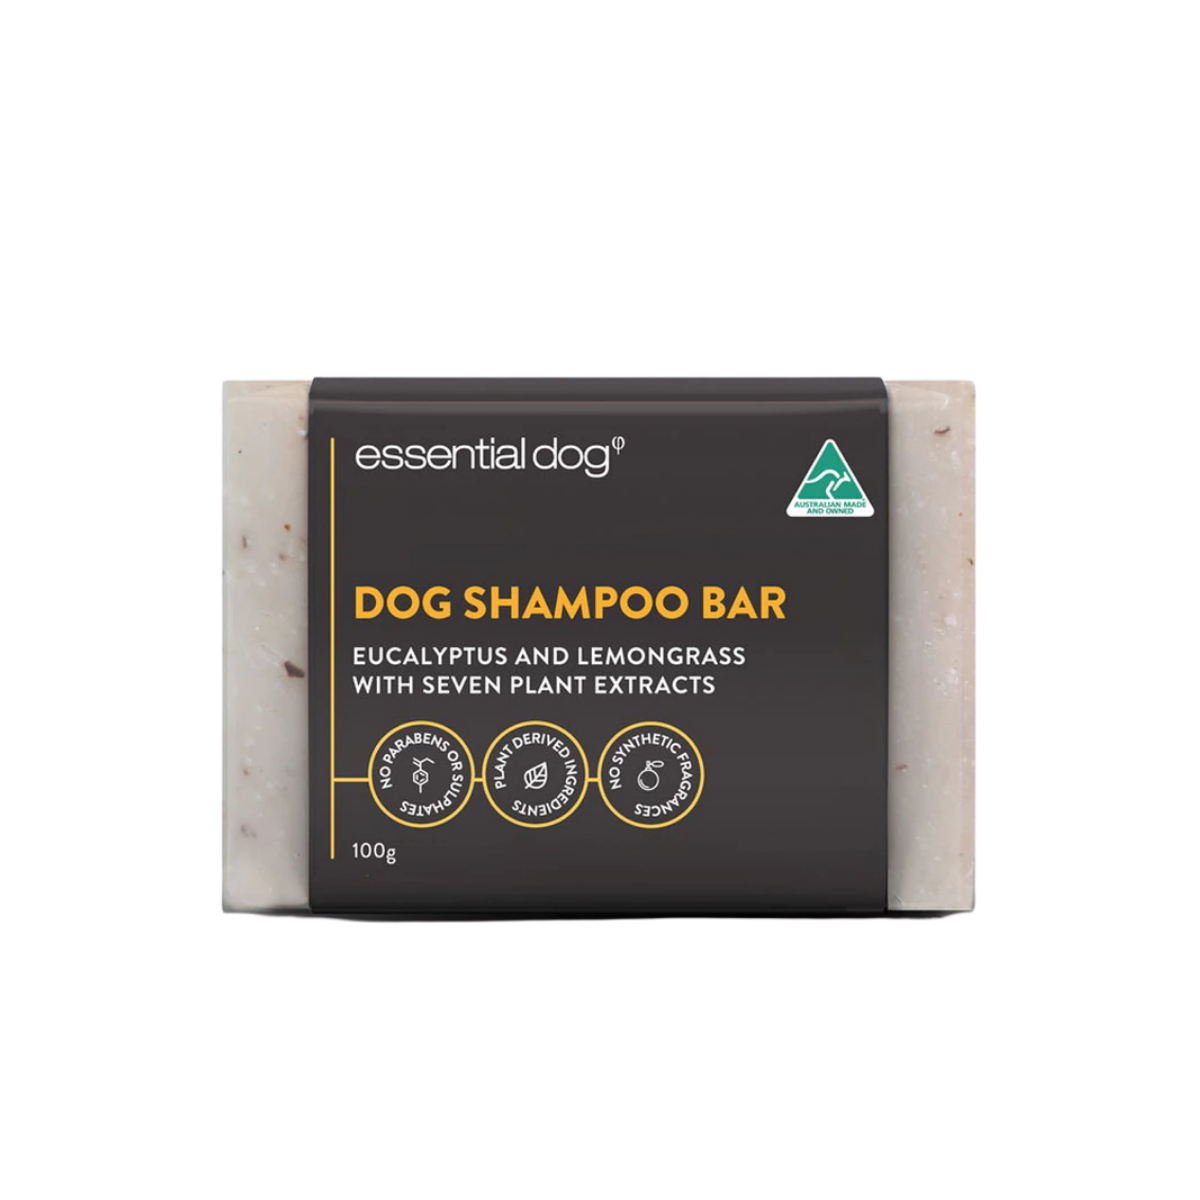 Essential Dog Shampoo Bar (Neem Seed, Lemongrass And Eucalyptus)